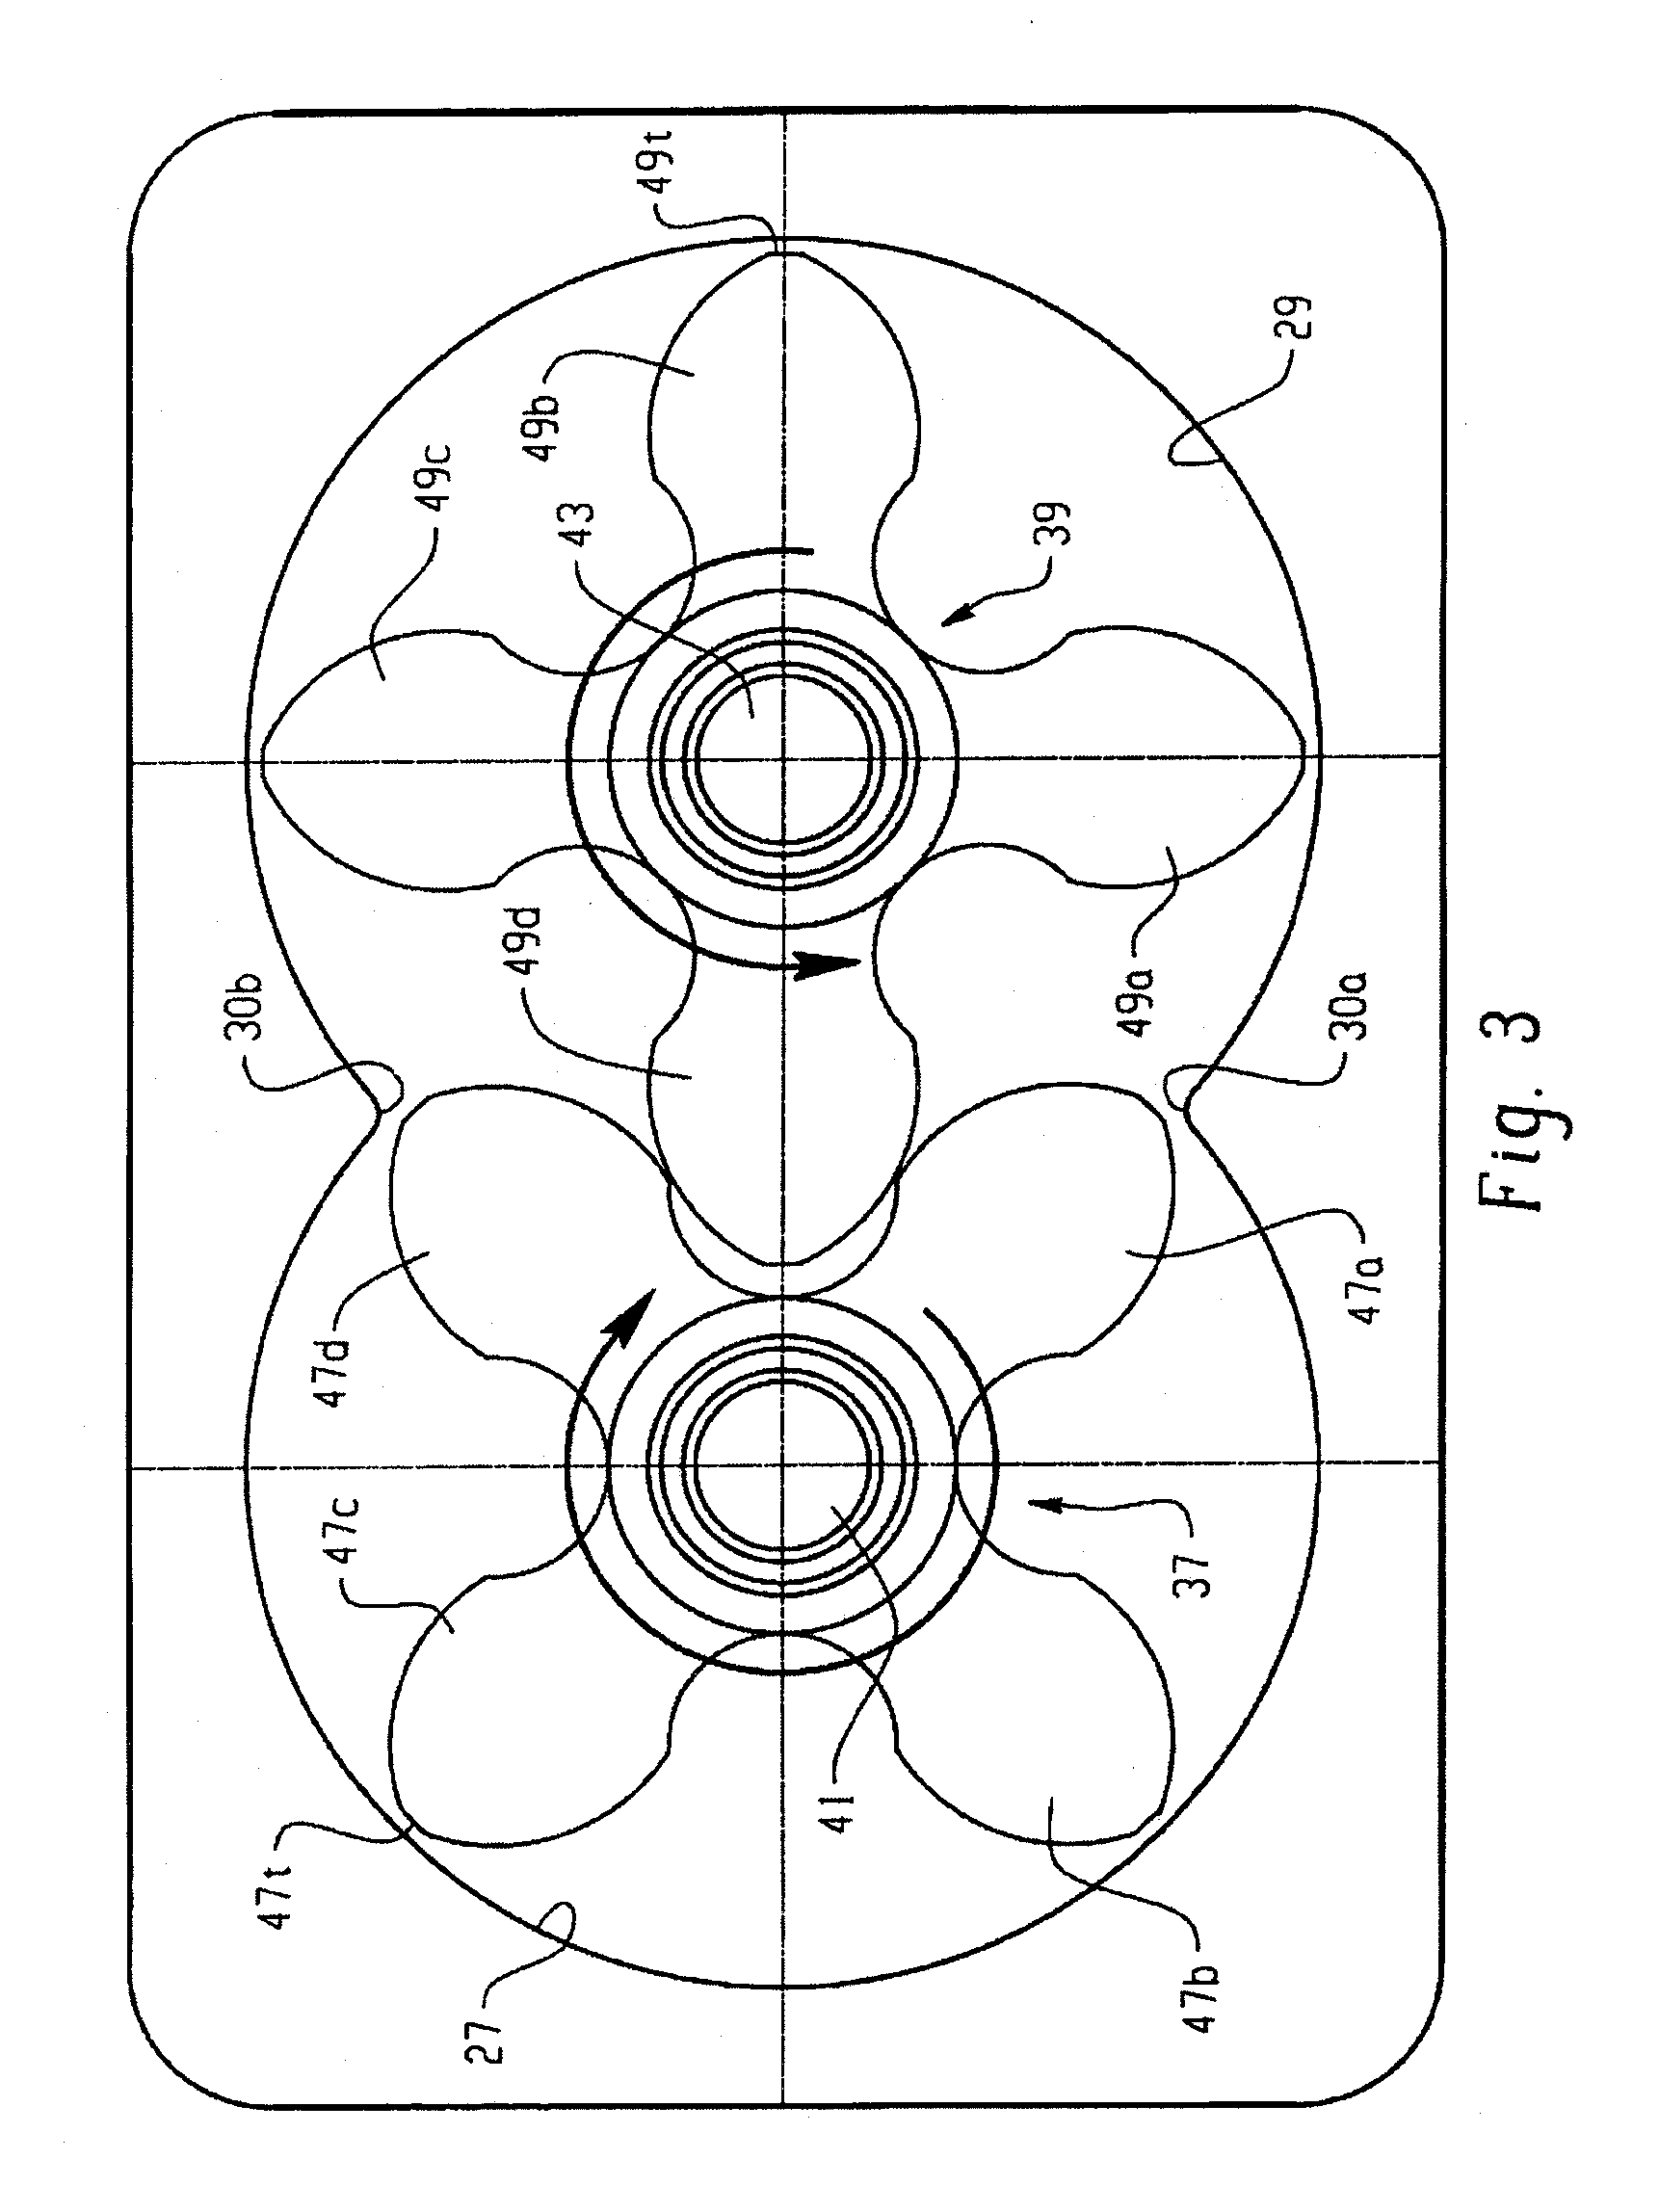 Patent US8632324 - Optimized helix angle rotors for roots-style ...